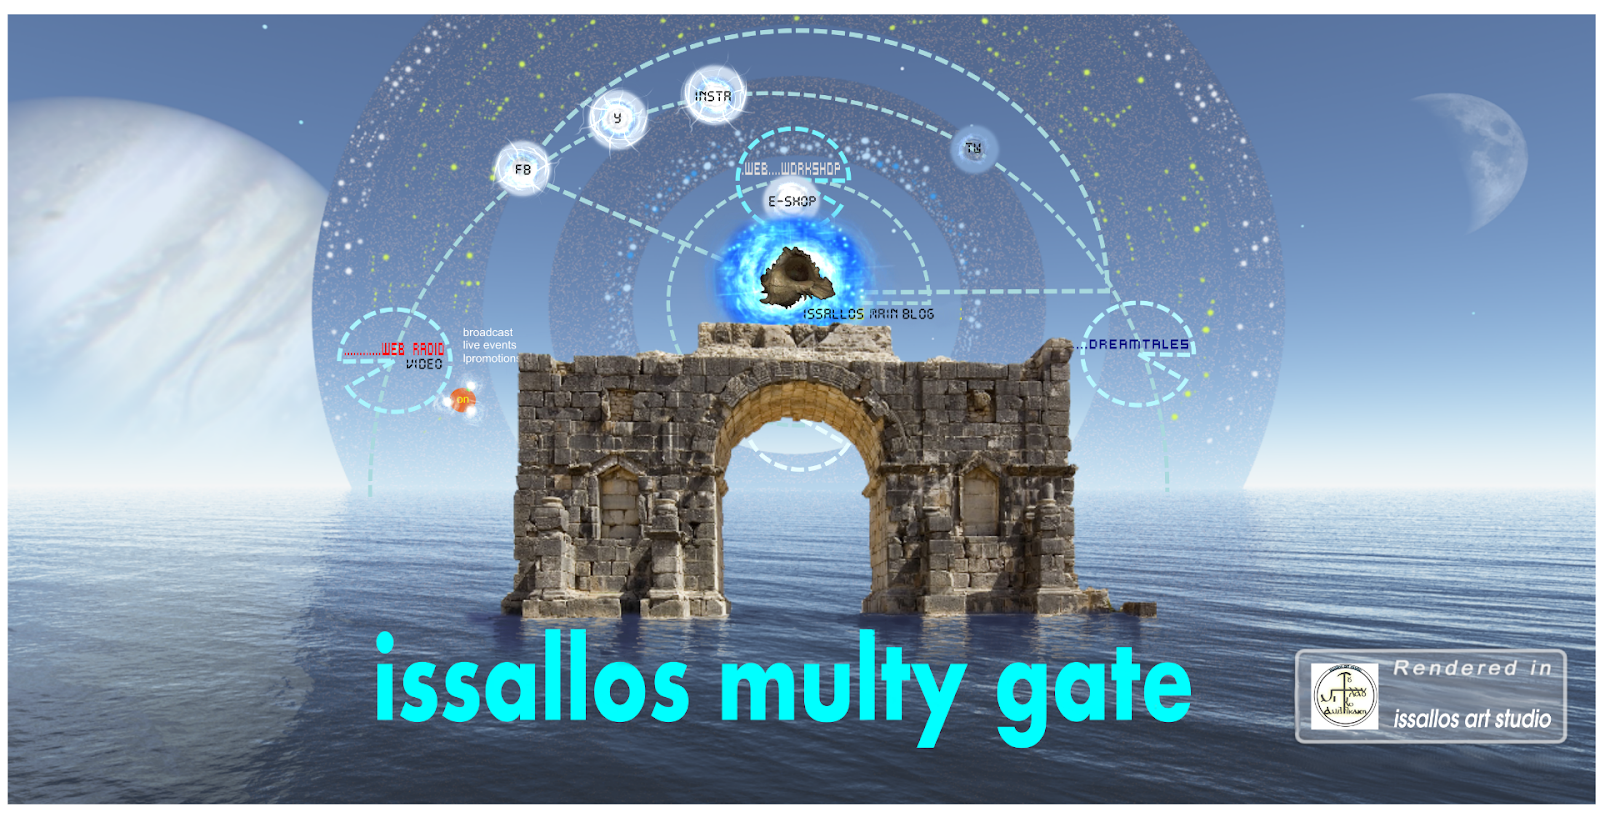 issallos multy gate